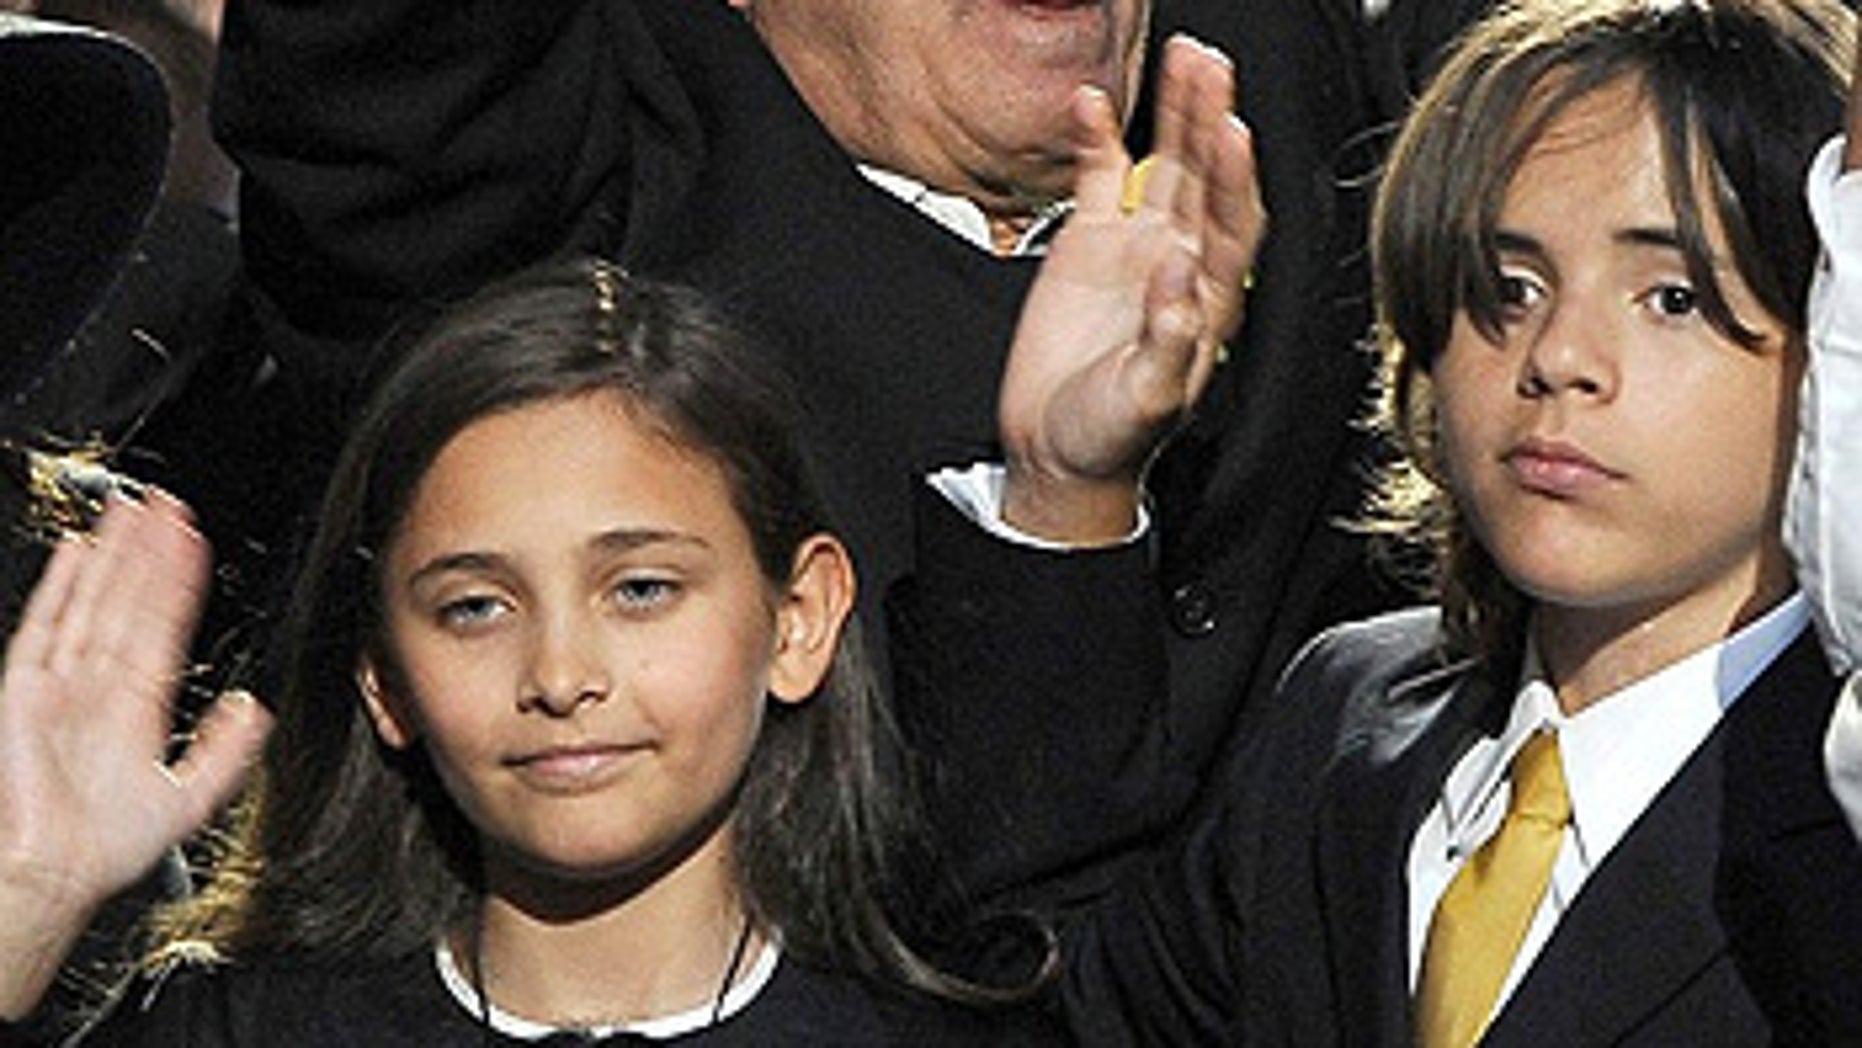 July 7: Michael Jackson's daughter Paris and two sons Prince Michael II (Blanket) and Prince Michael at the singer's memorial in L.A.